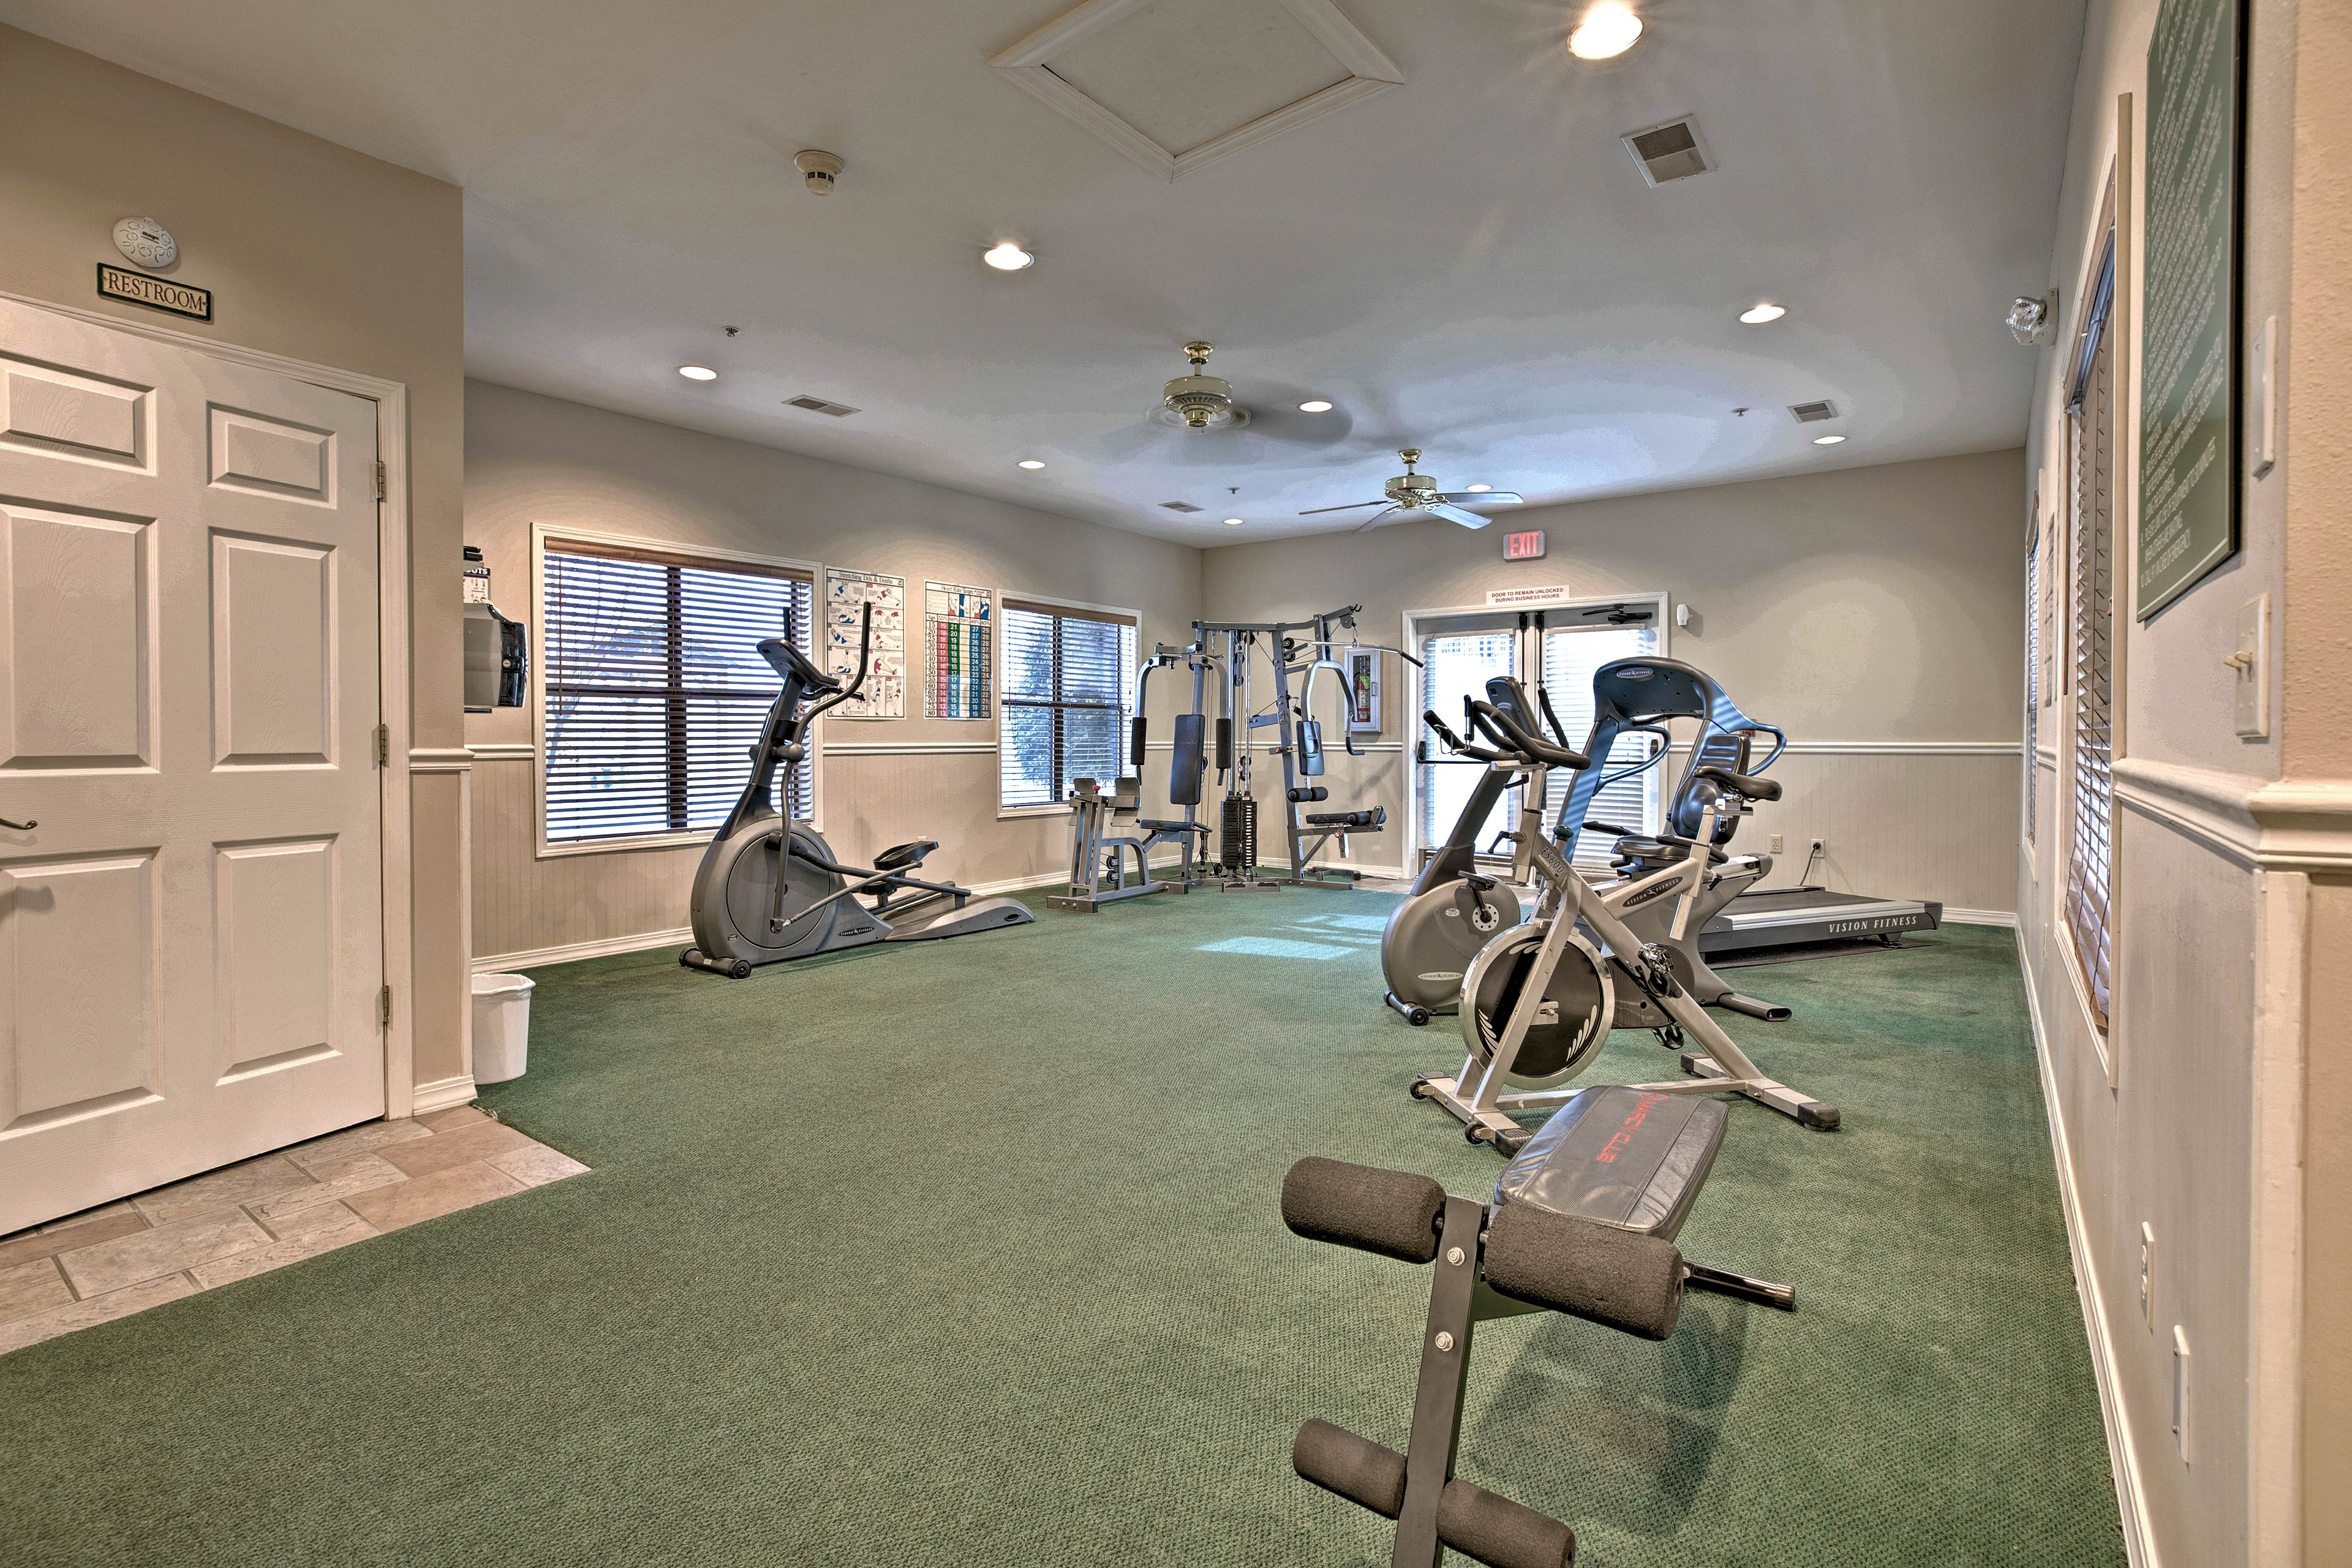 Stay on track with a fitness center!